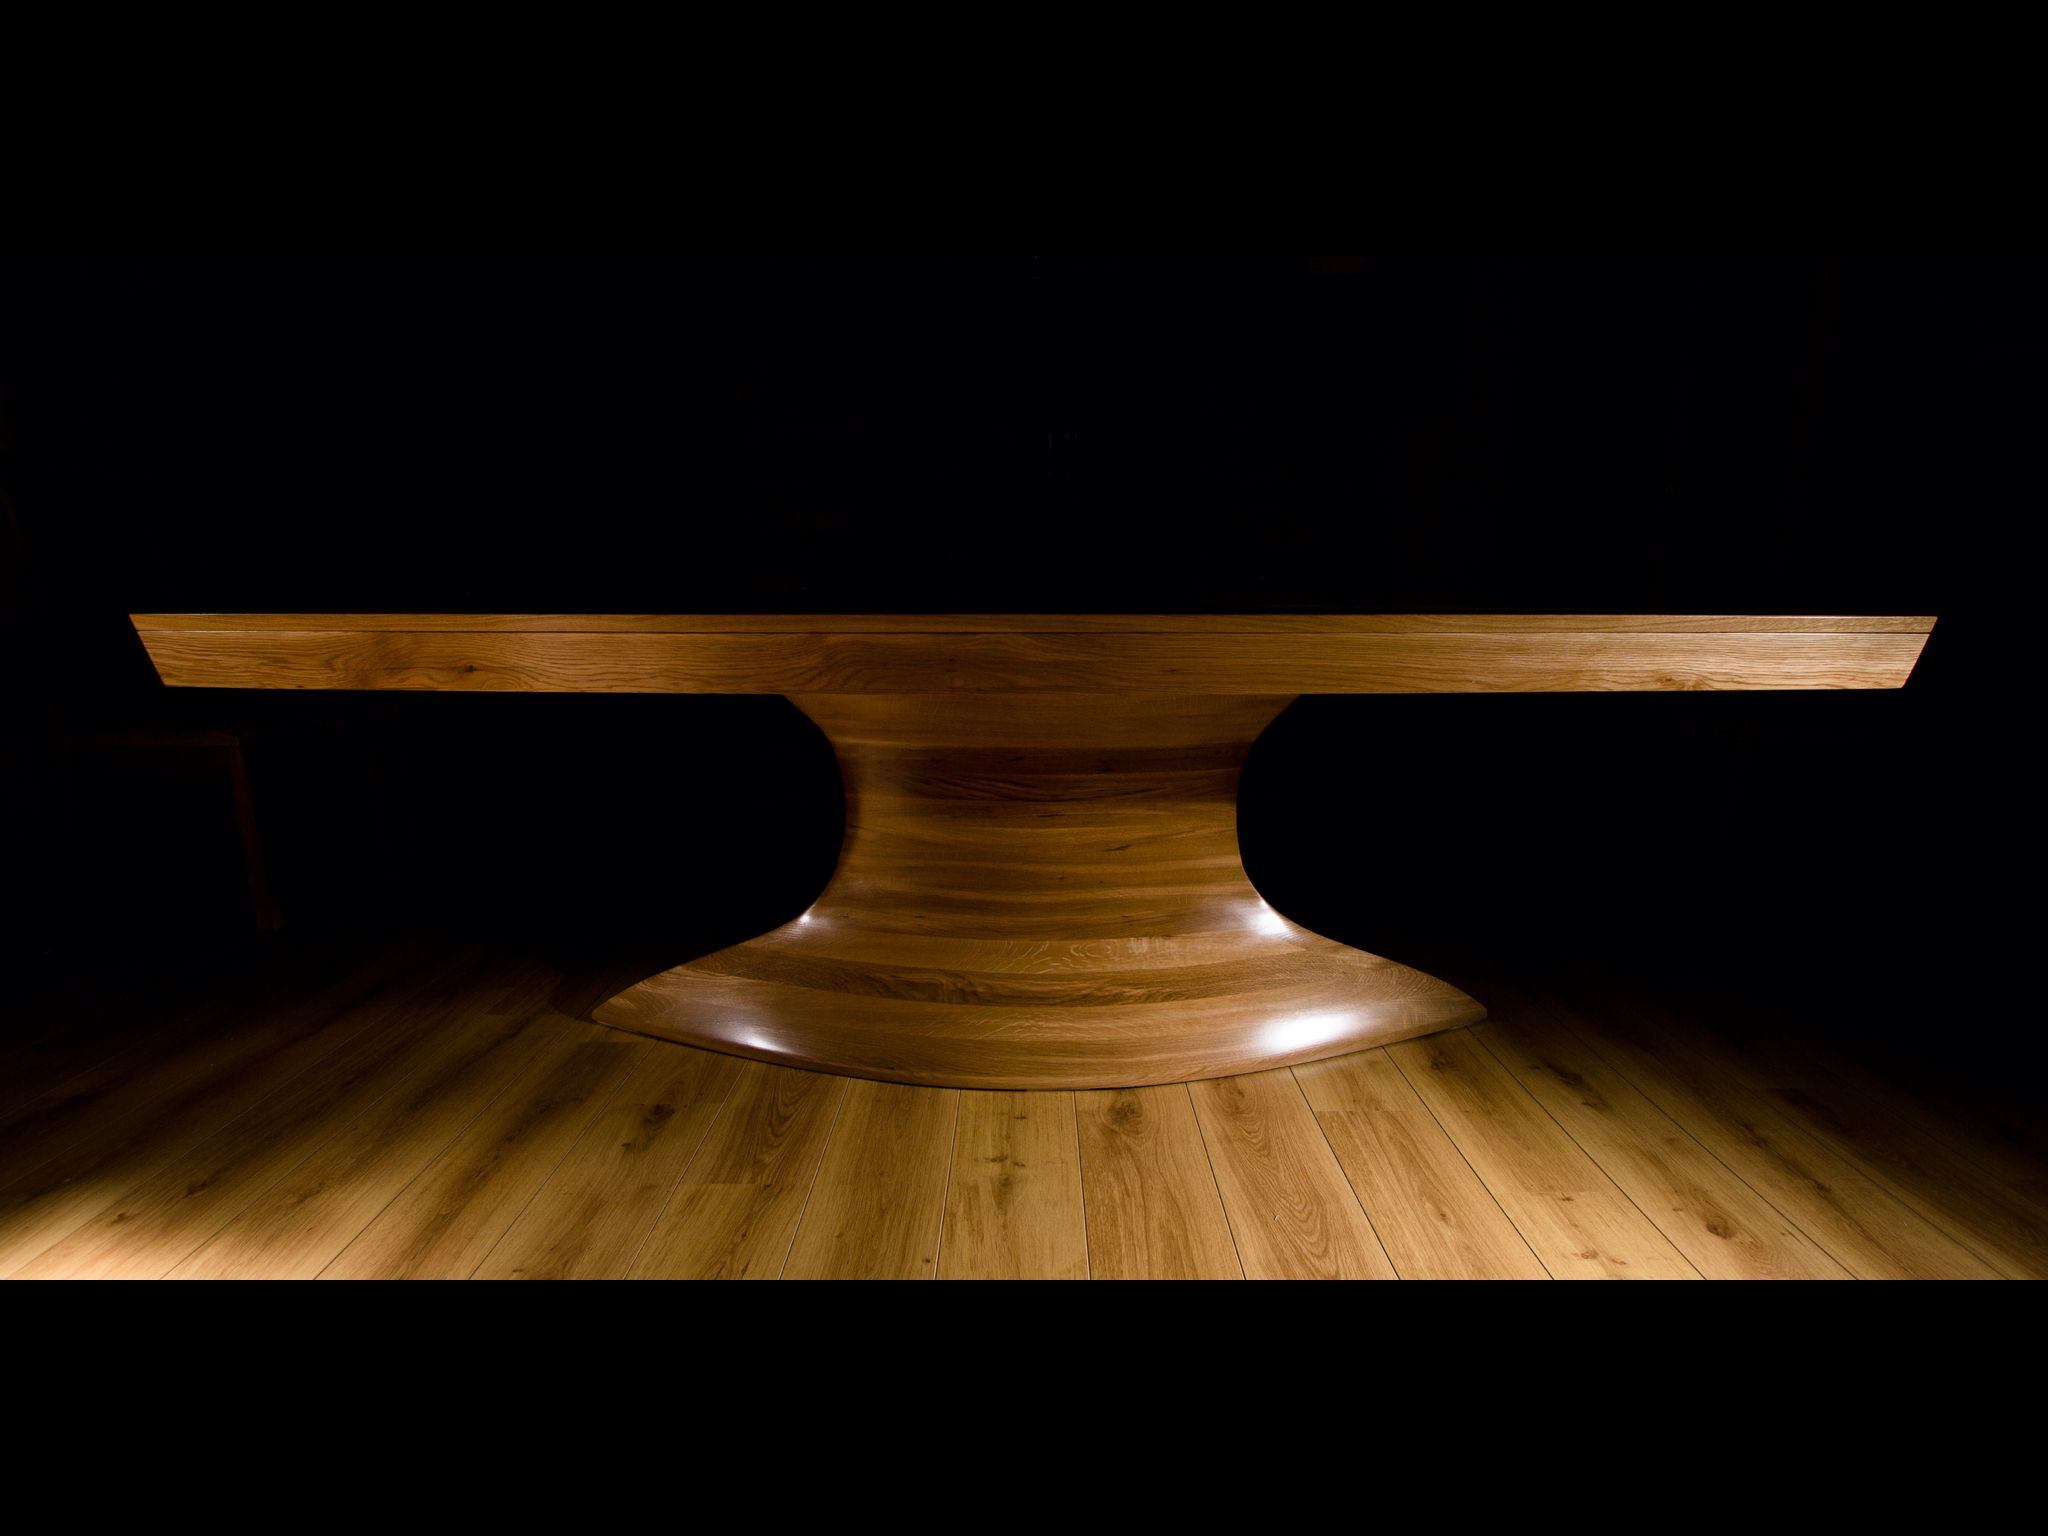 bespoke dining table handcrafted designed by john ireland